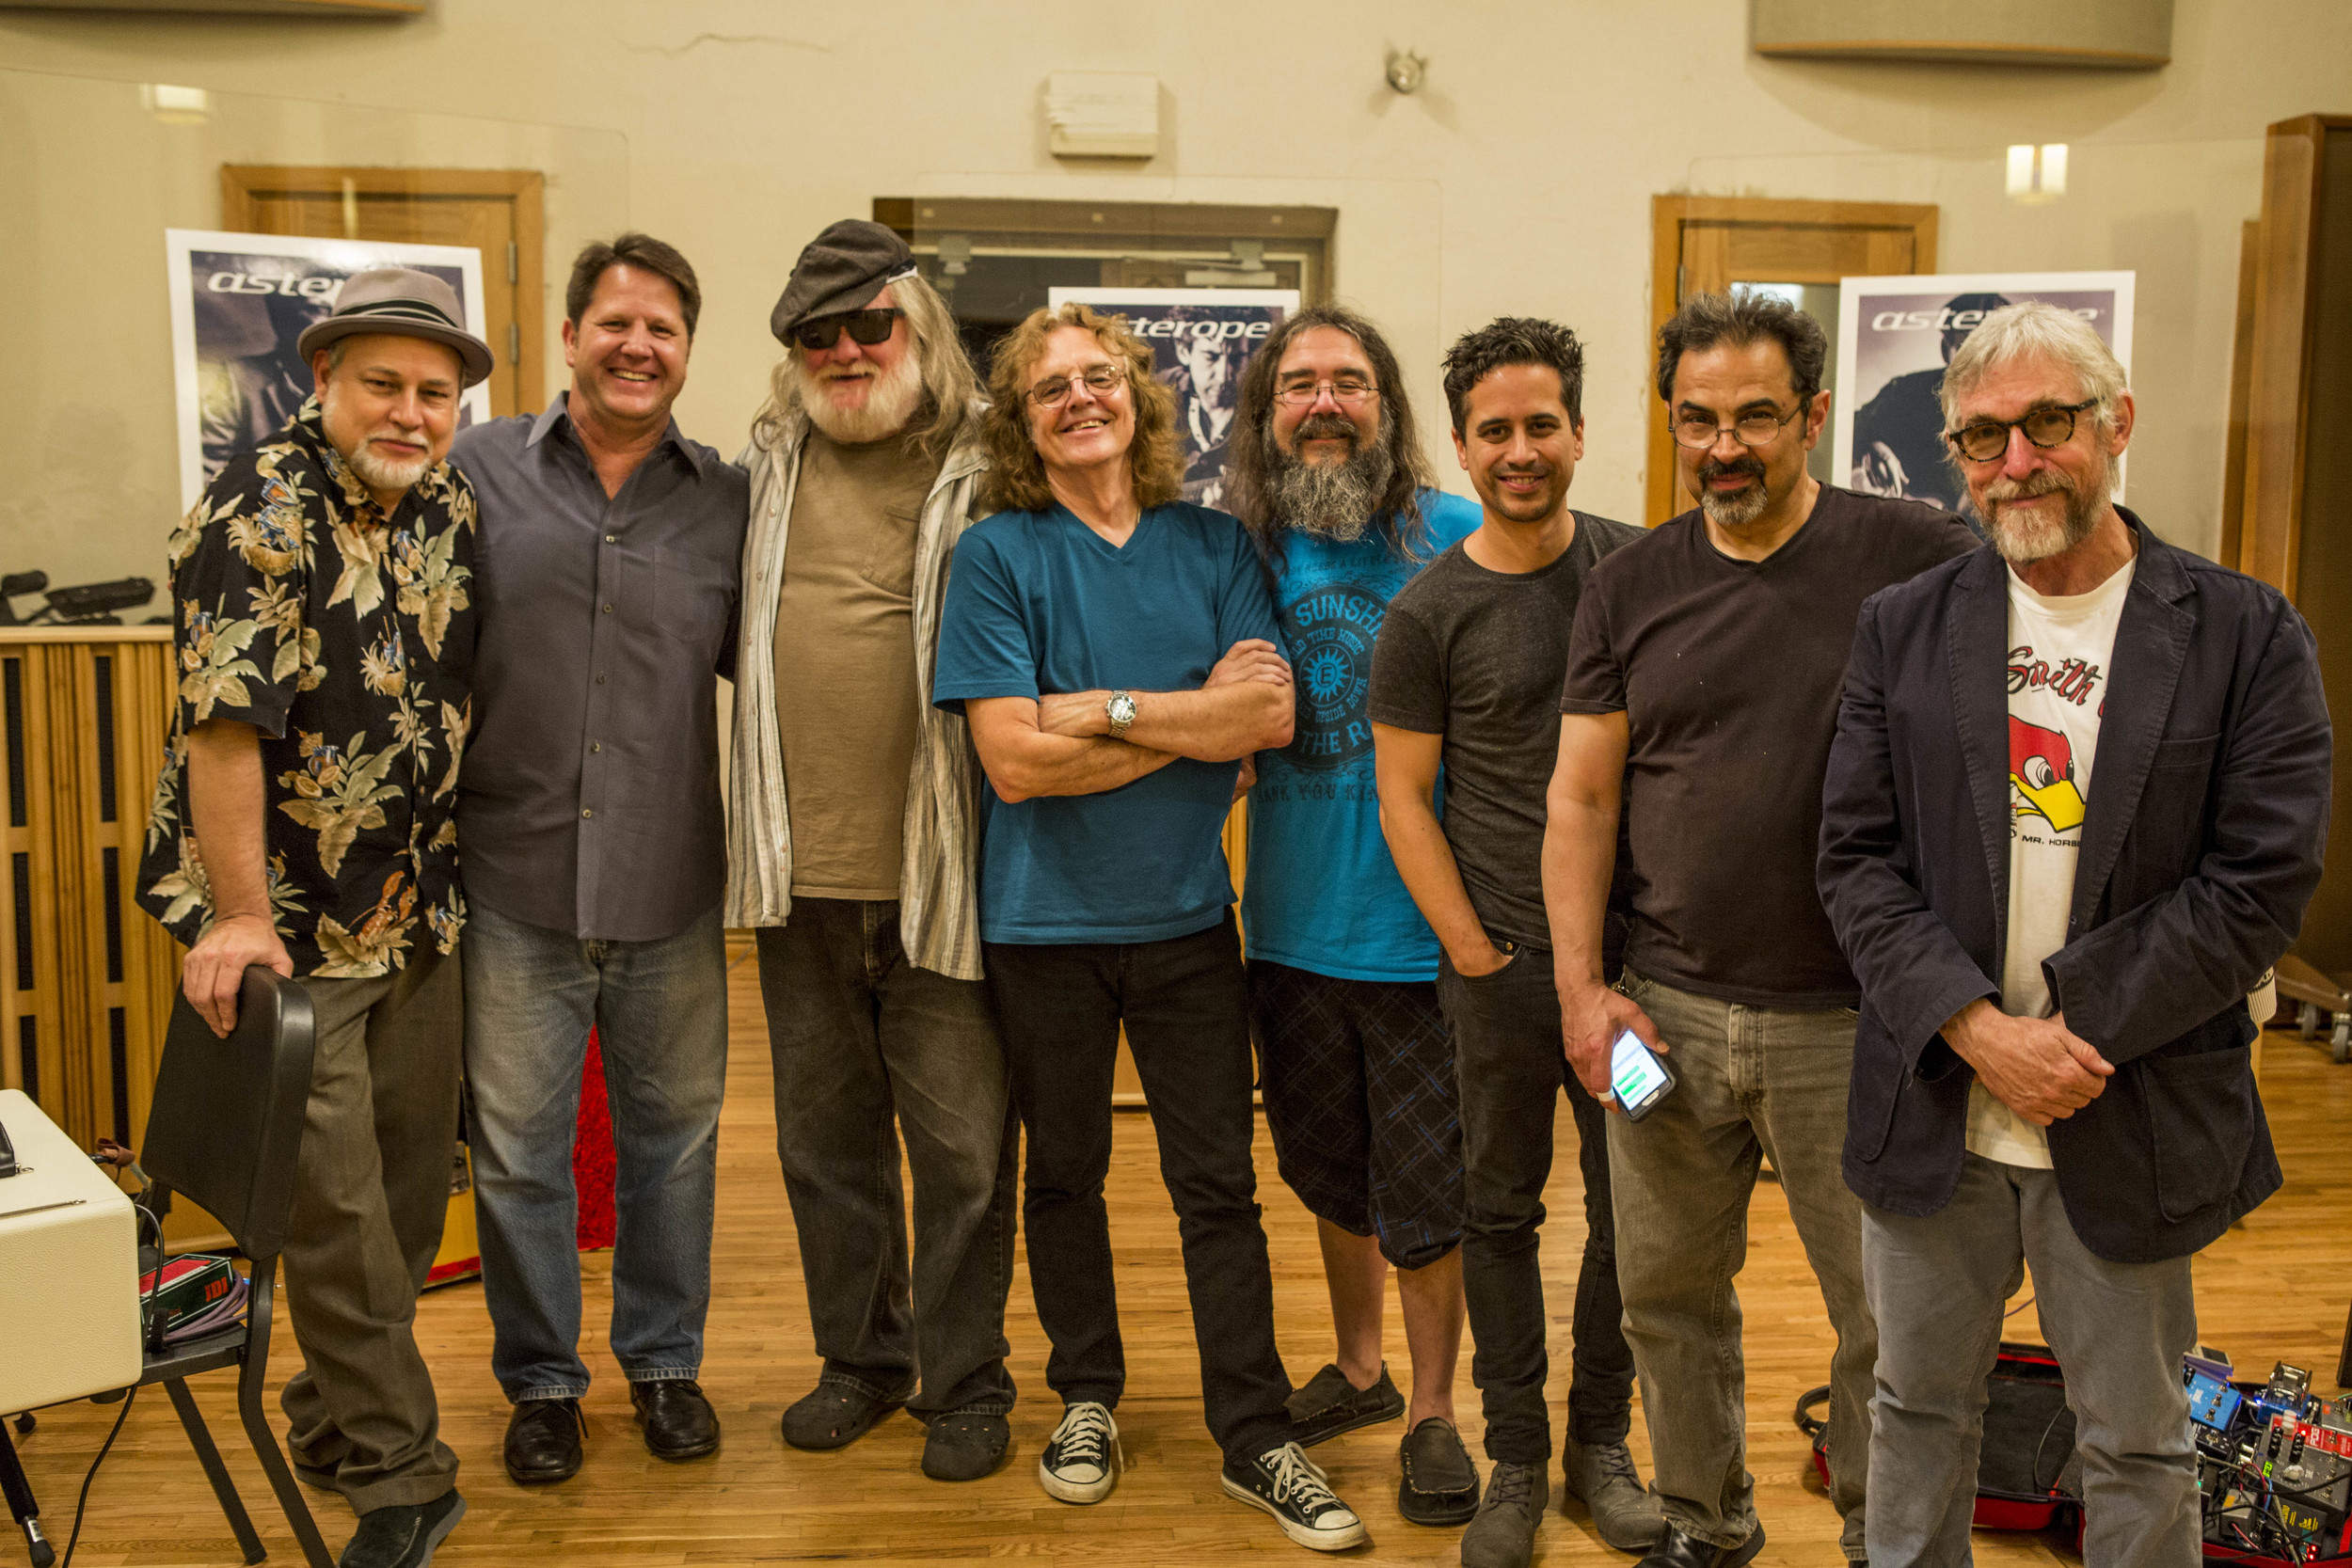 The band (from left to right) - Dave Pomeroy, Dariush Rad, Johnny Neel, Michael Spriggs, Tony Gerber, Corey Congilio, Sam Bacco and Russ Pahl  Photo by  Ed Rode